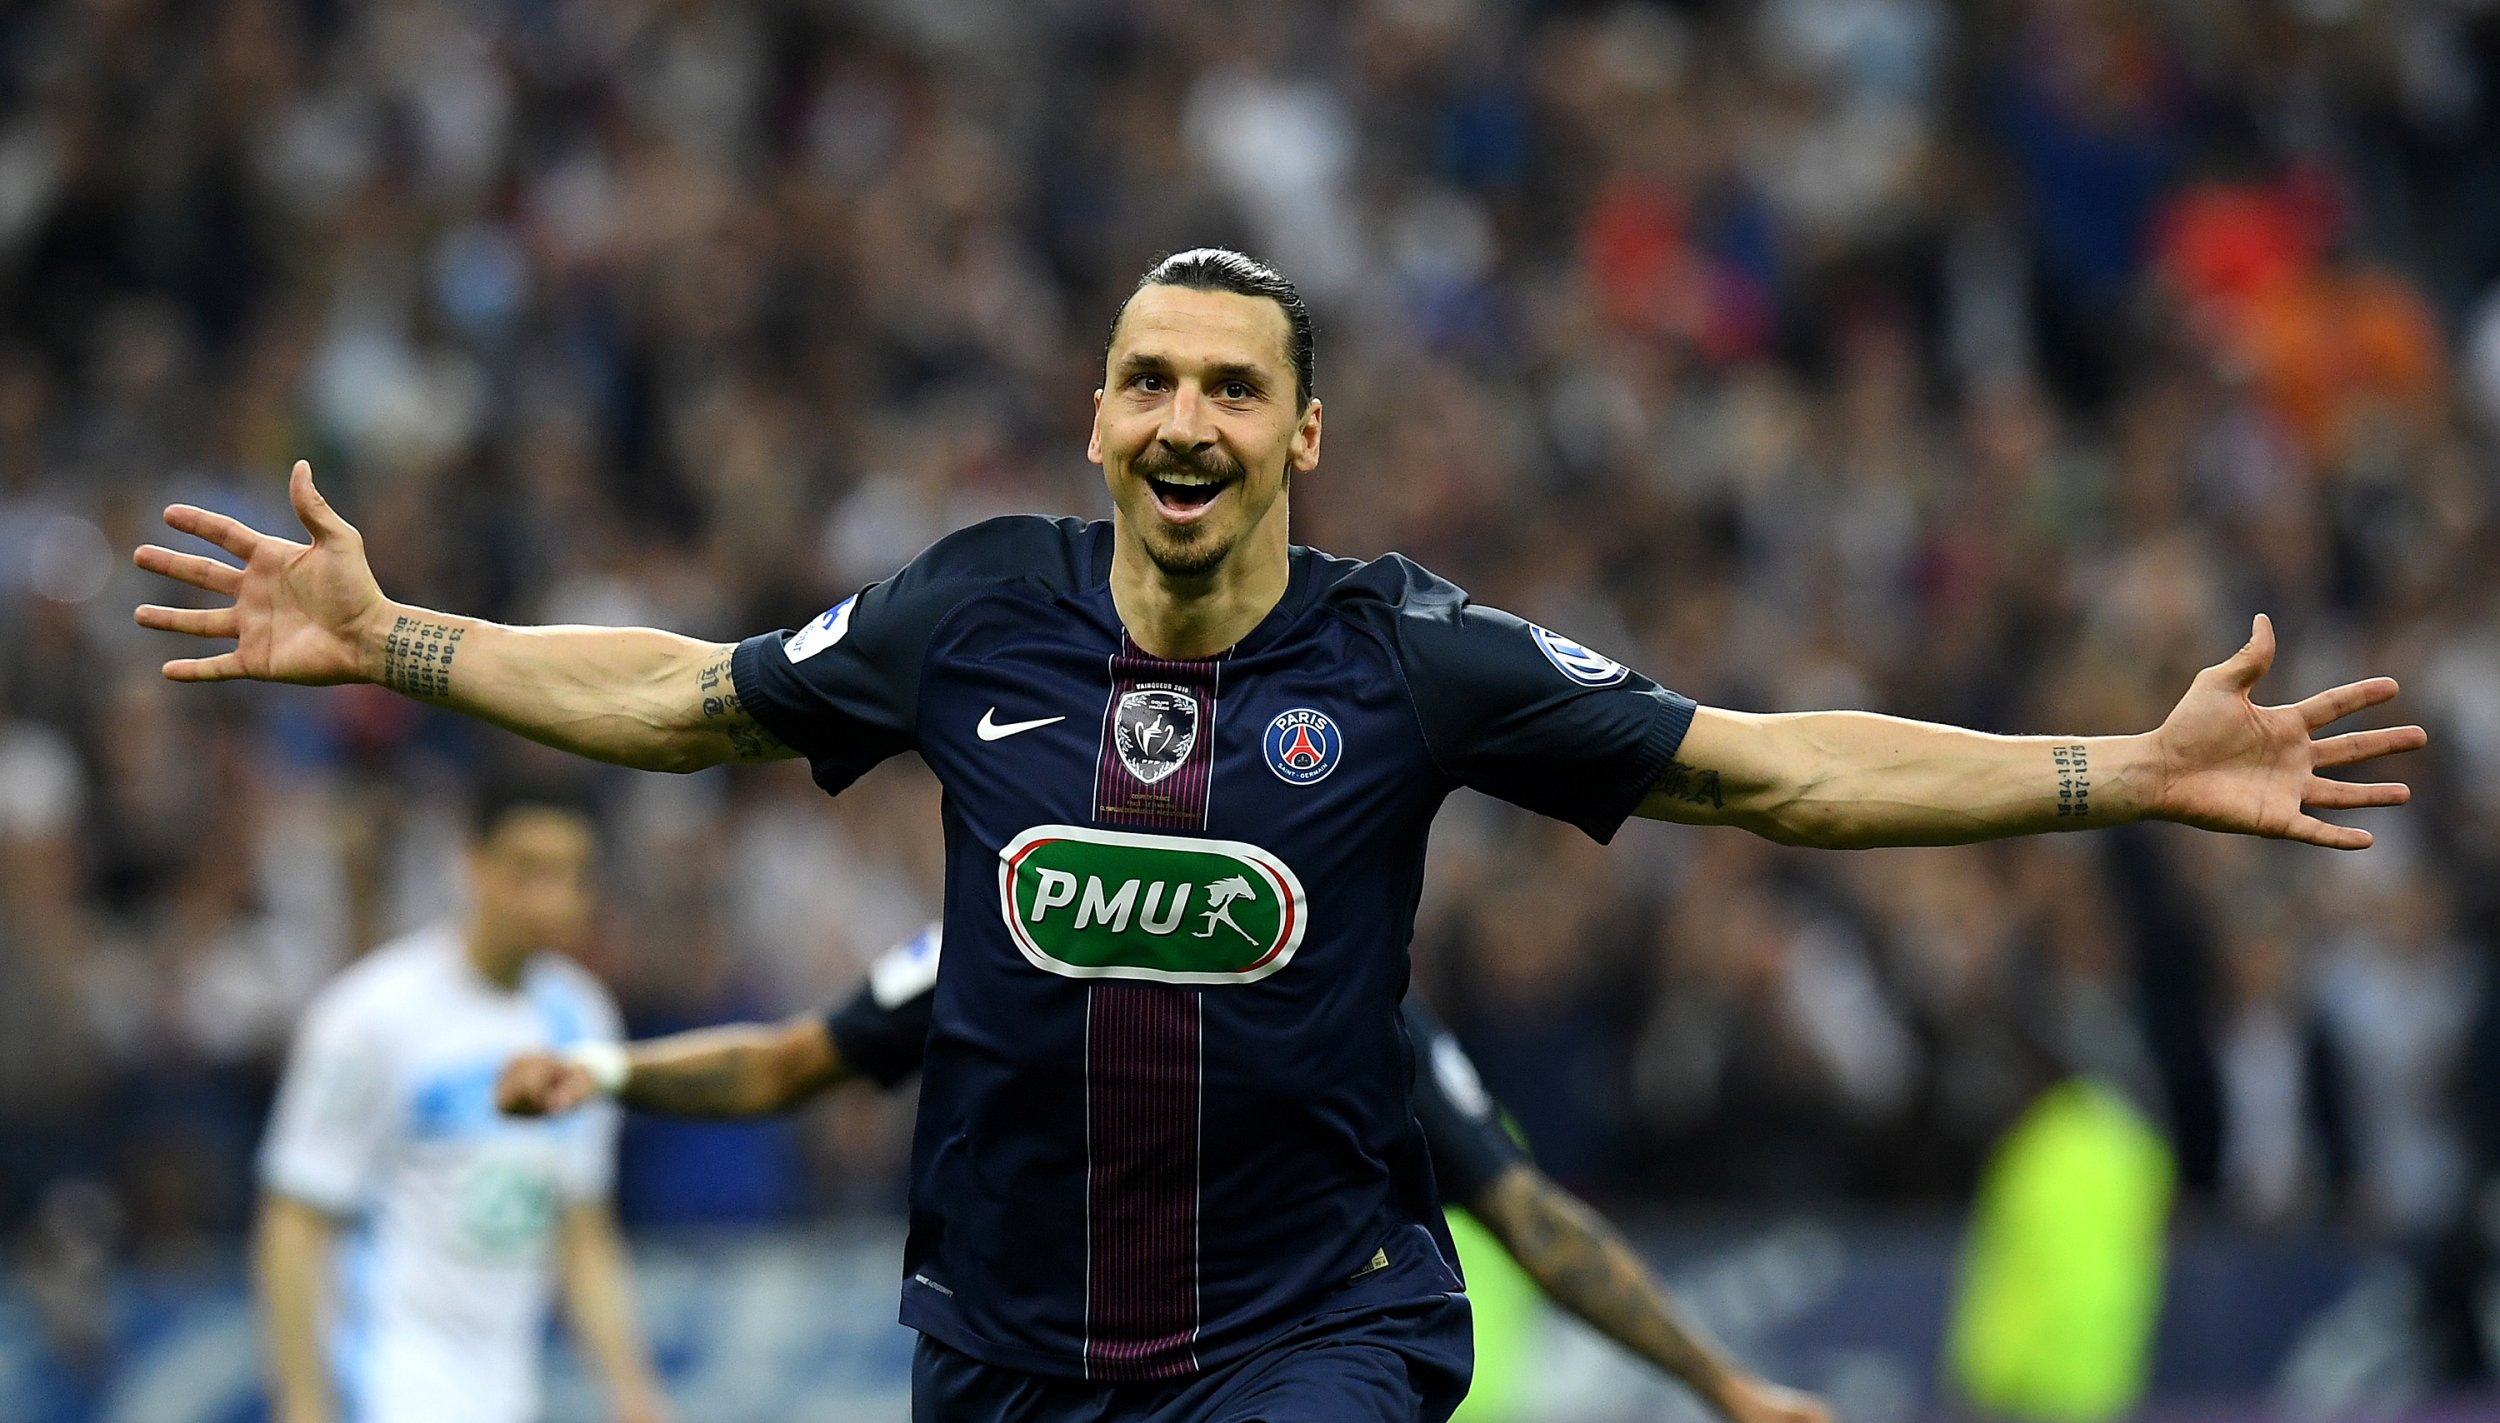 Zlatan Ibrahimovic: The Next Emperor Of Germany?